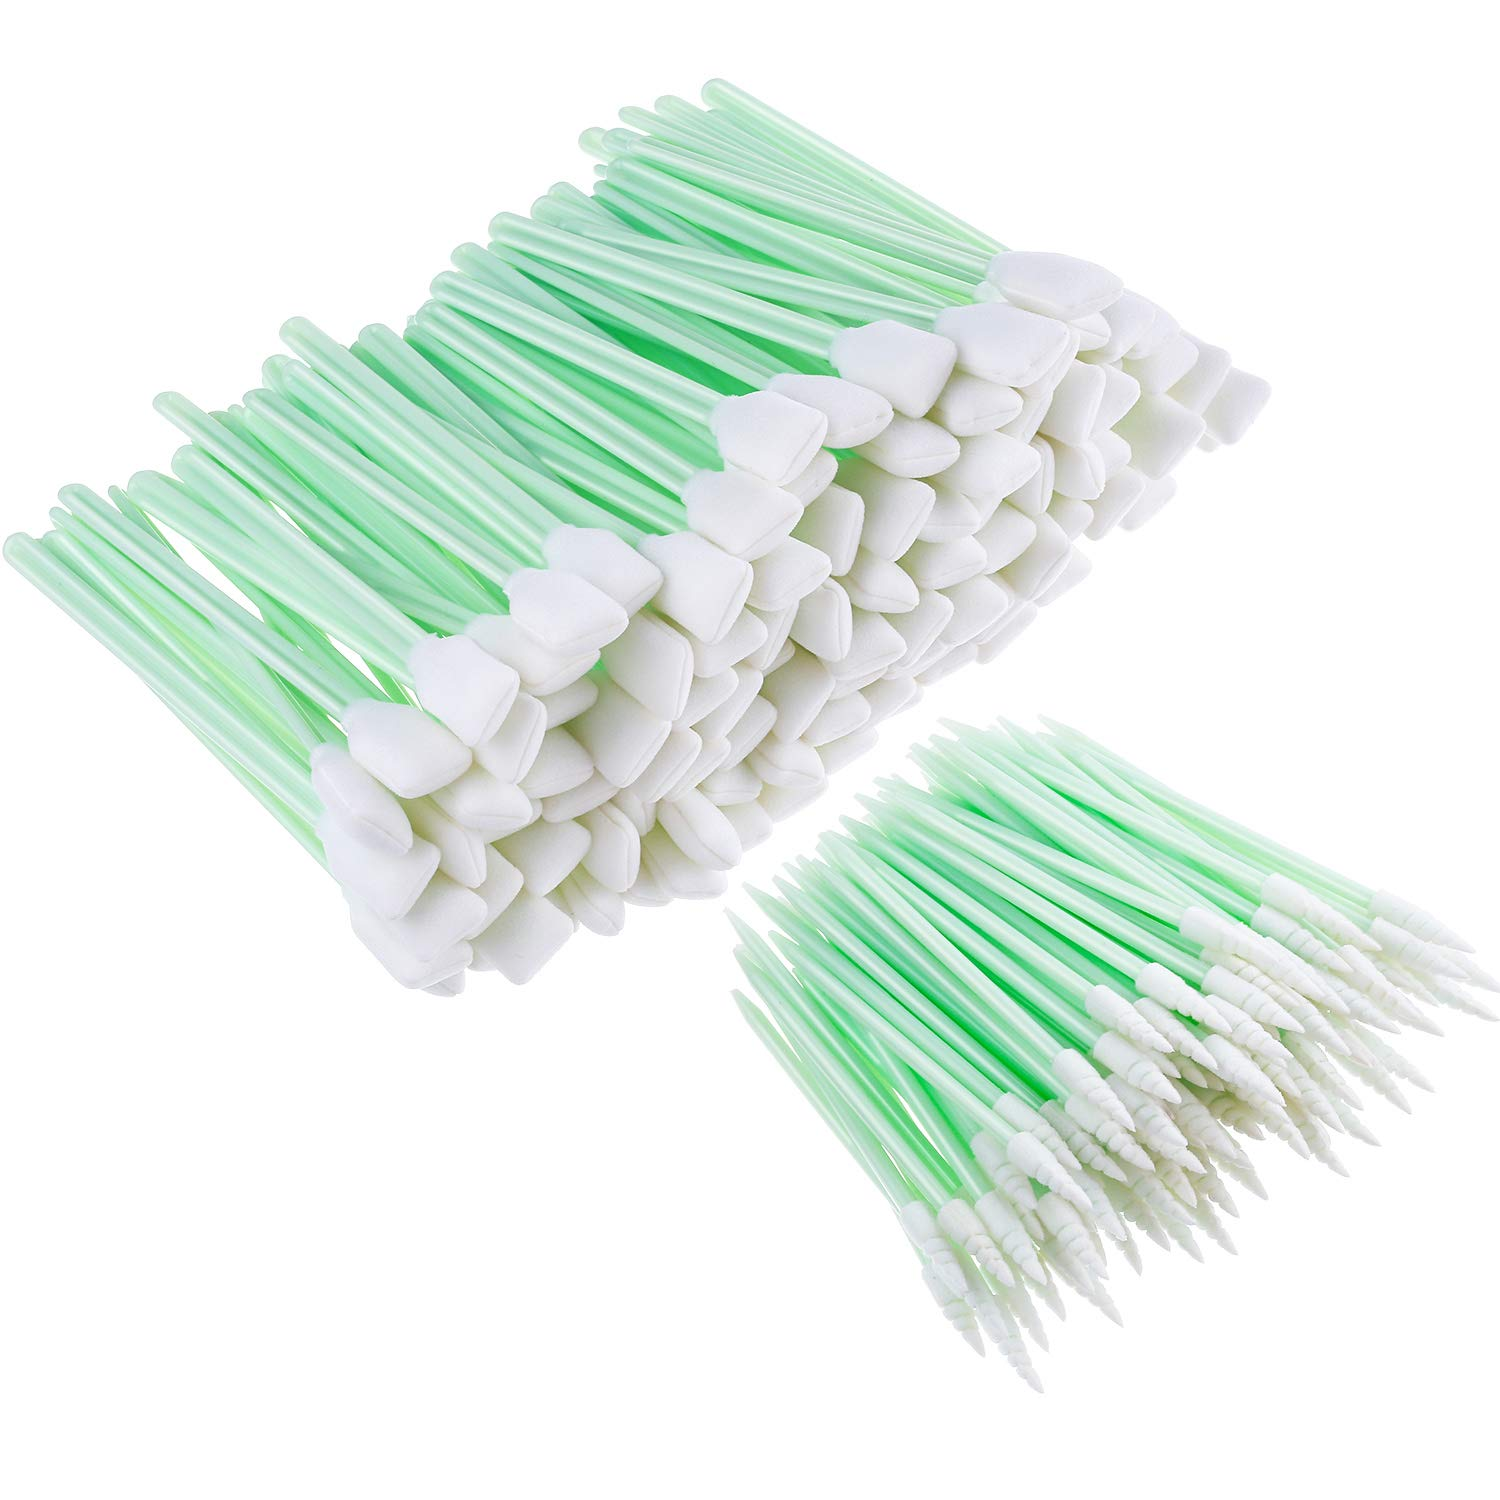 Chinco 200 Pieces 5.1 Inches Square Rectangle Foam Cleaning Swab Sticks and 2.52 Inches Foam Tip Cleaning Swabs Sponge Stick for Inkjet Printer, Print Head, Camera, Optical Lens, Optical Equipment by Chinco